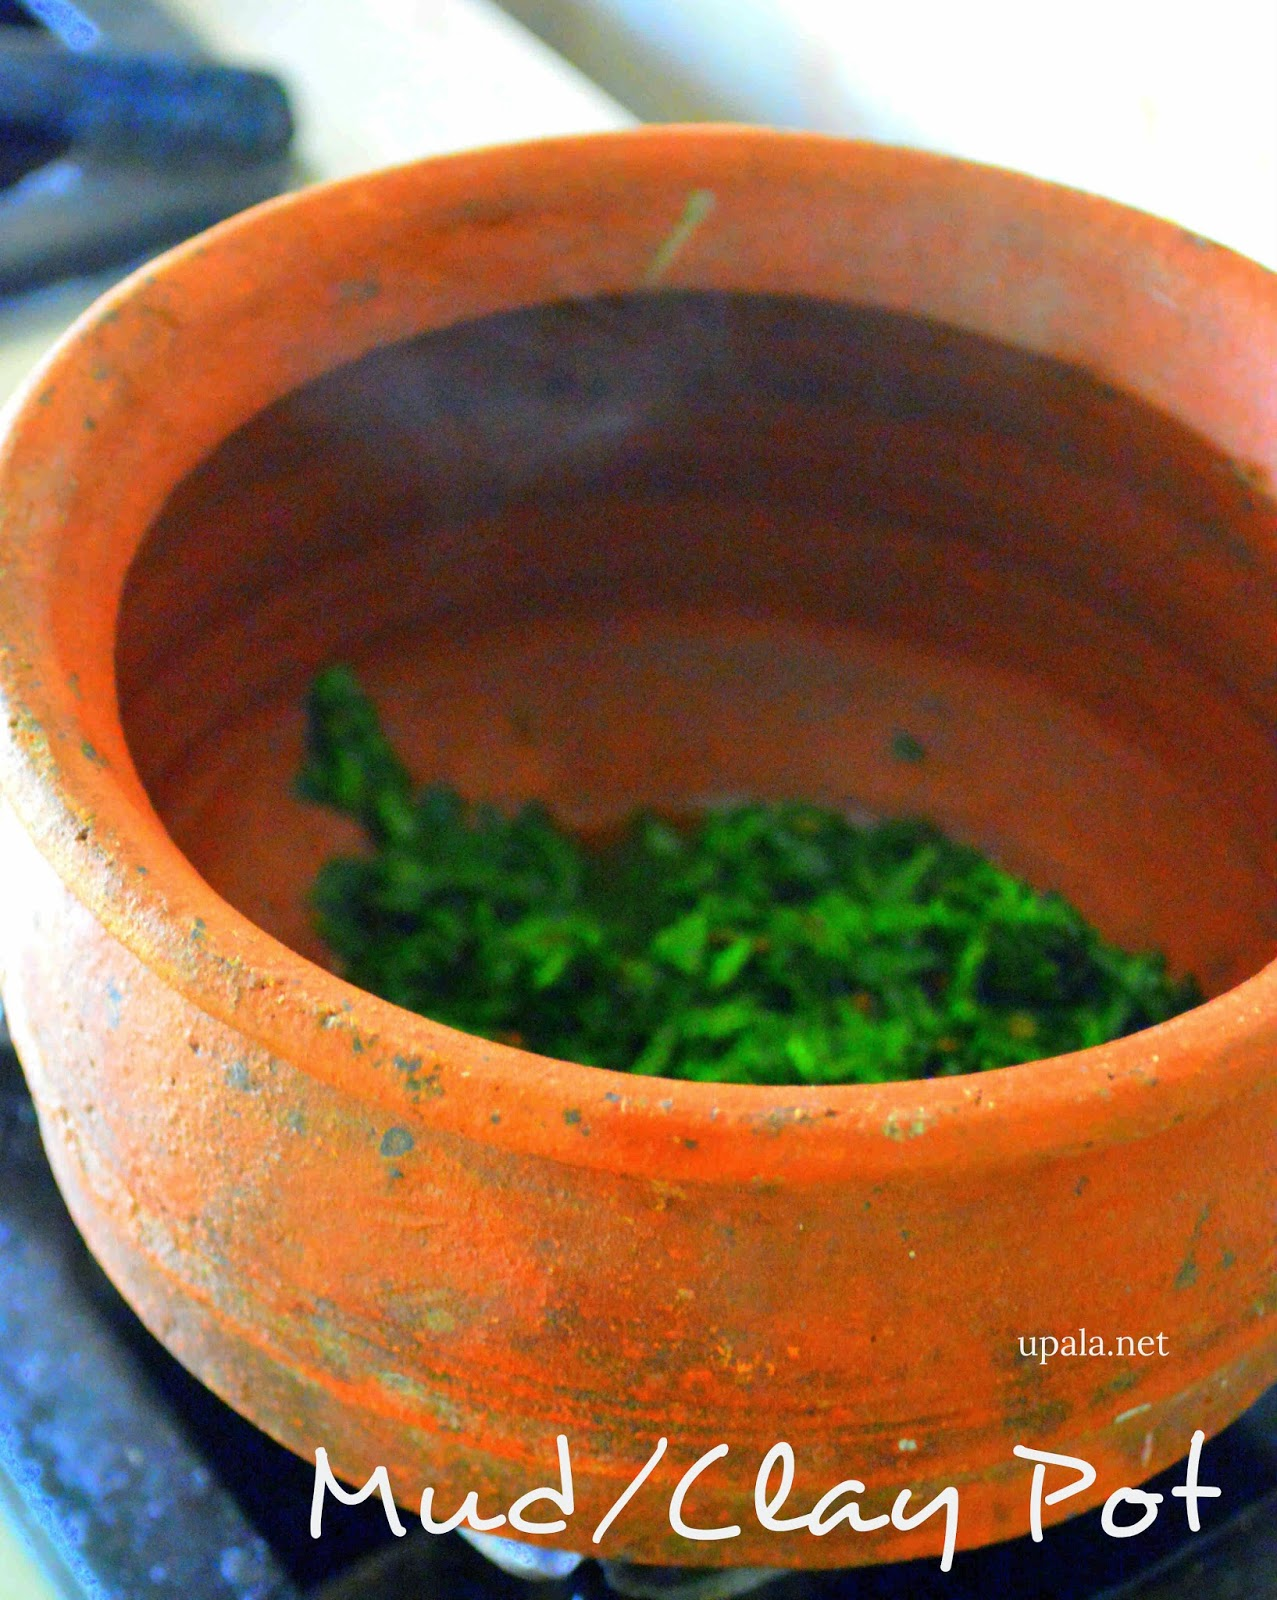 Upala: Mud pot/Clay pot cooking (Man paanai/Man Chatti samyal)